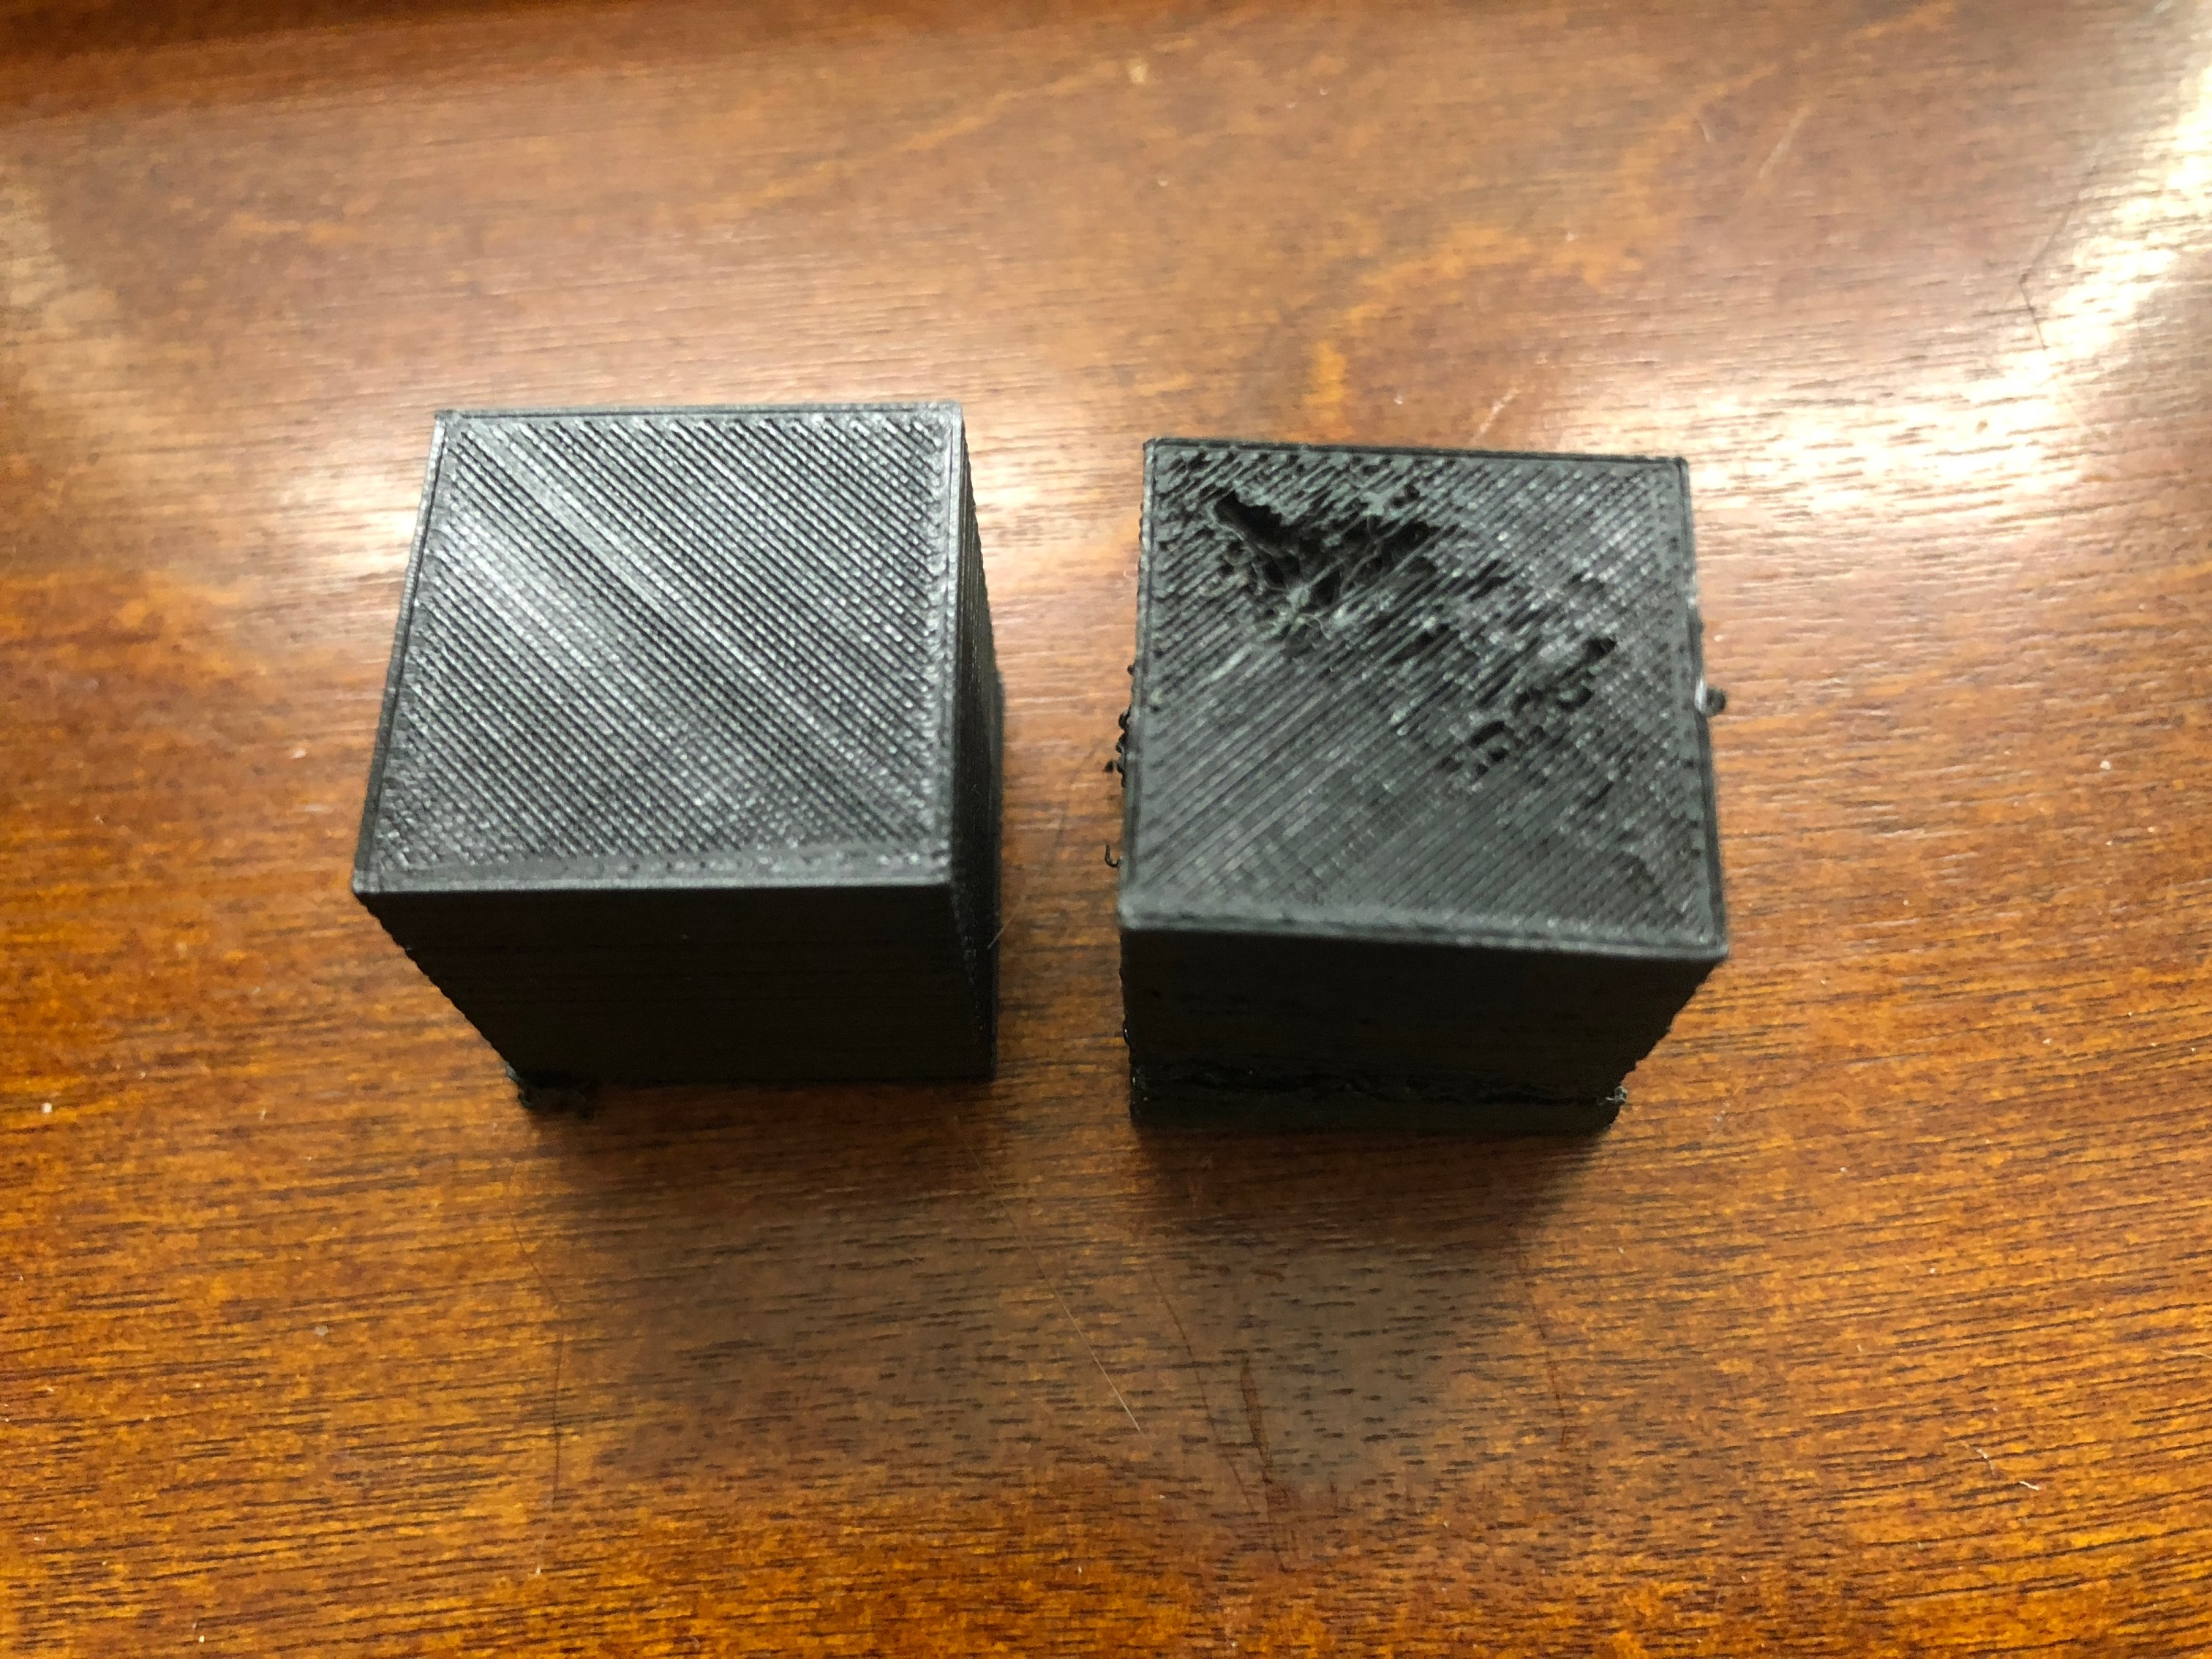 Part cooling makes a difference